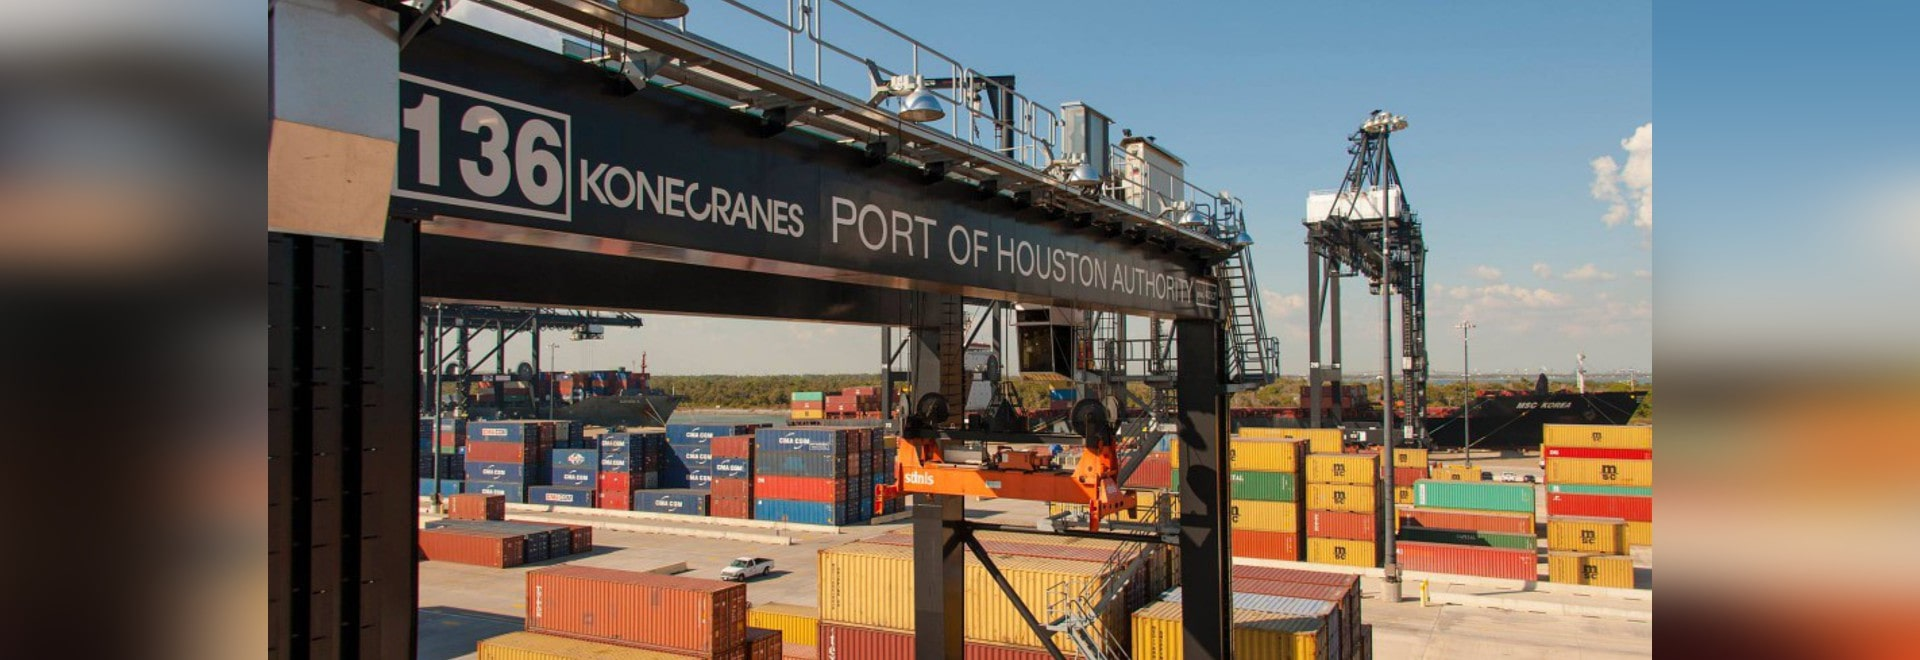 houston port usa